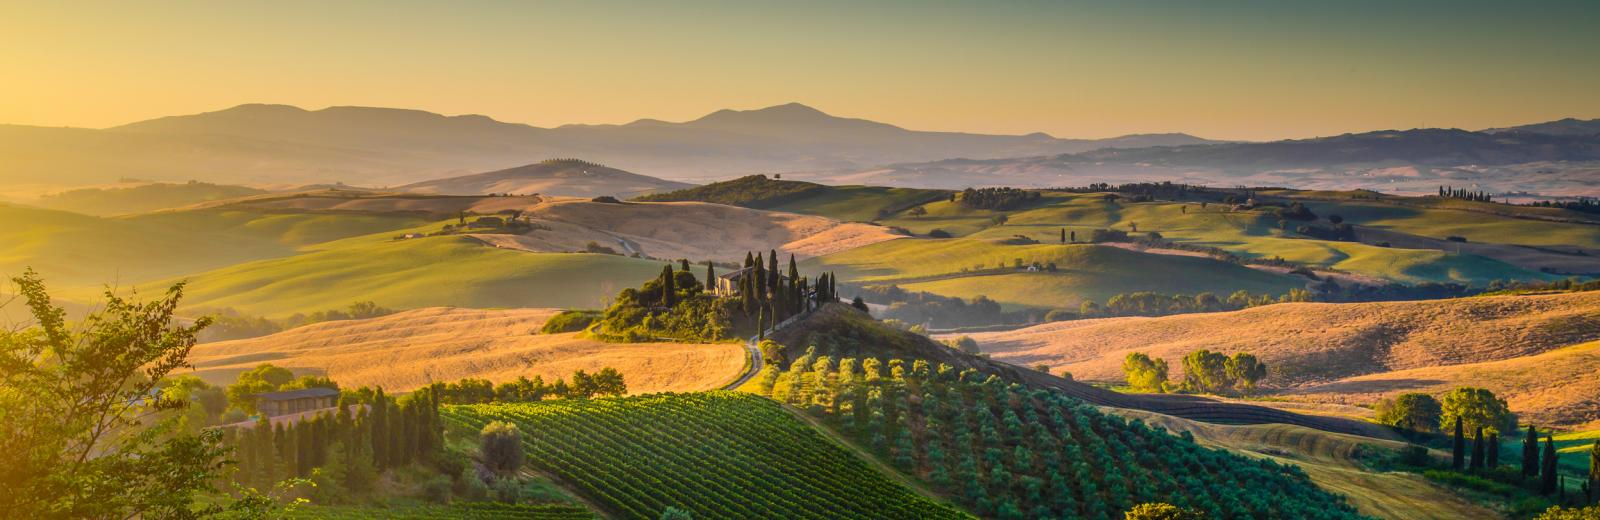 Road Quote Wallpaper Courts Et Longs S 233 Jours En Toscane Vacances Celebritours